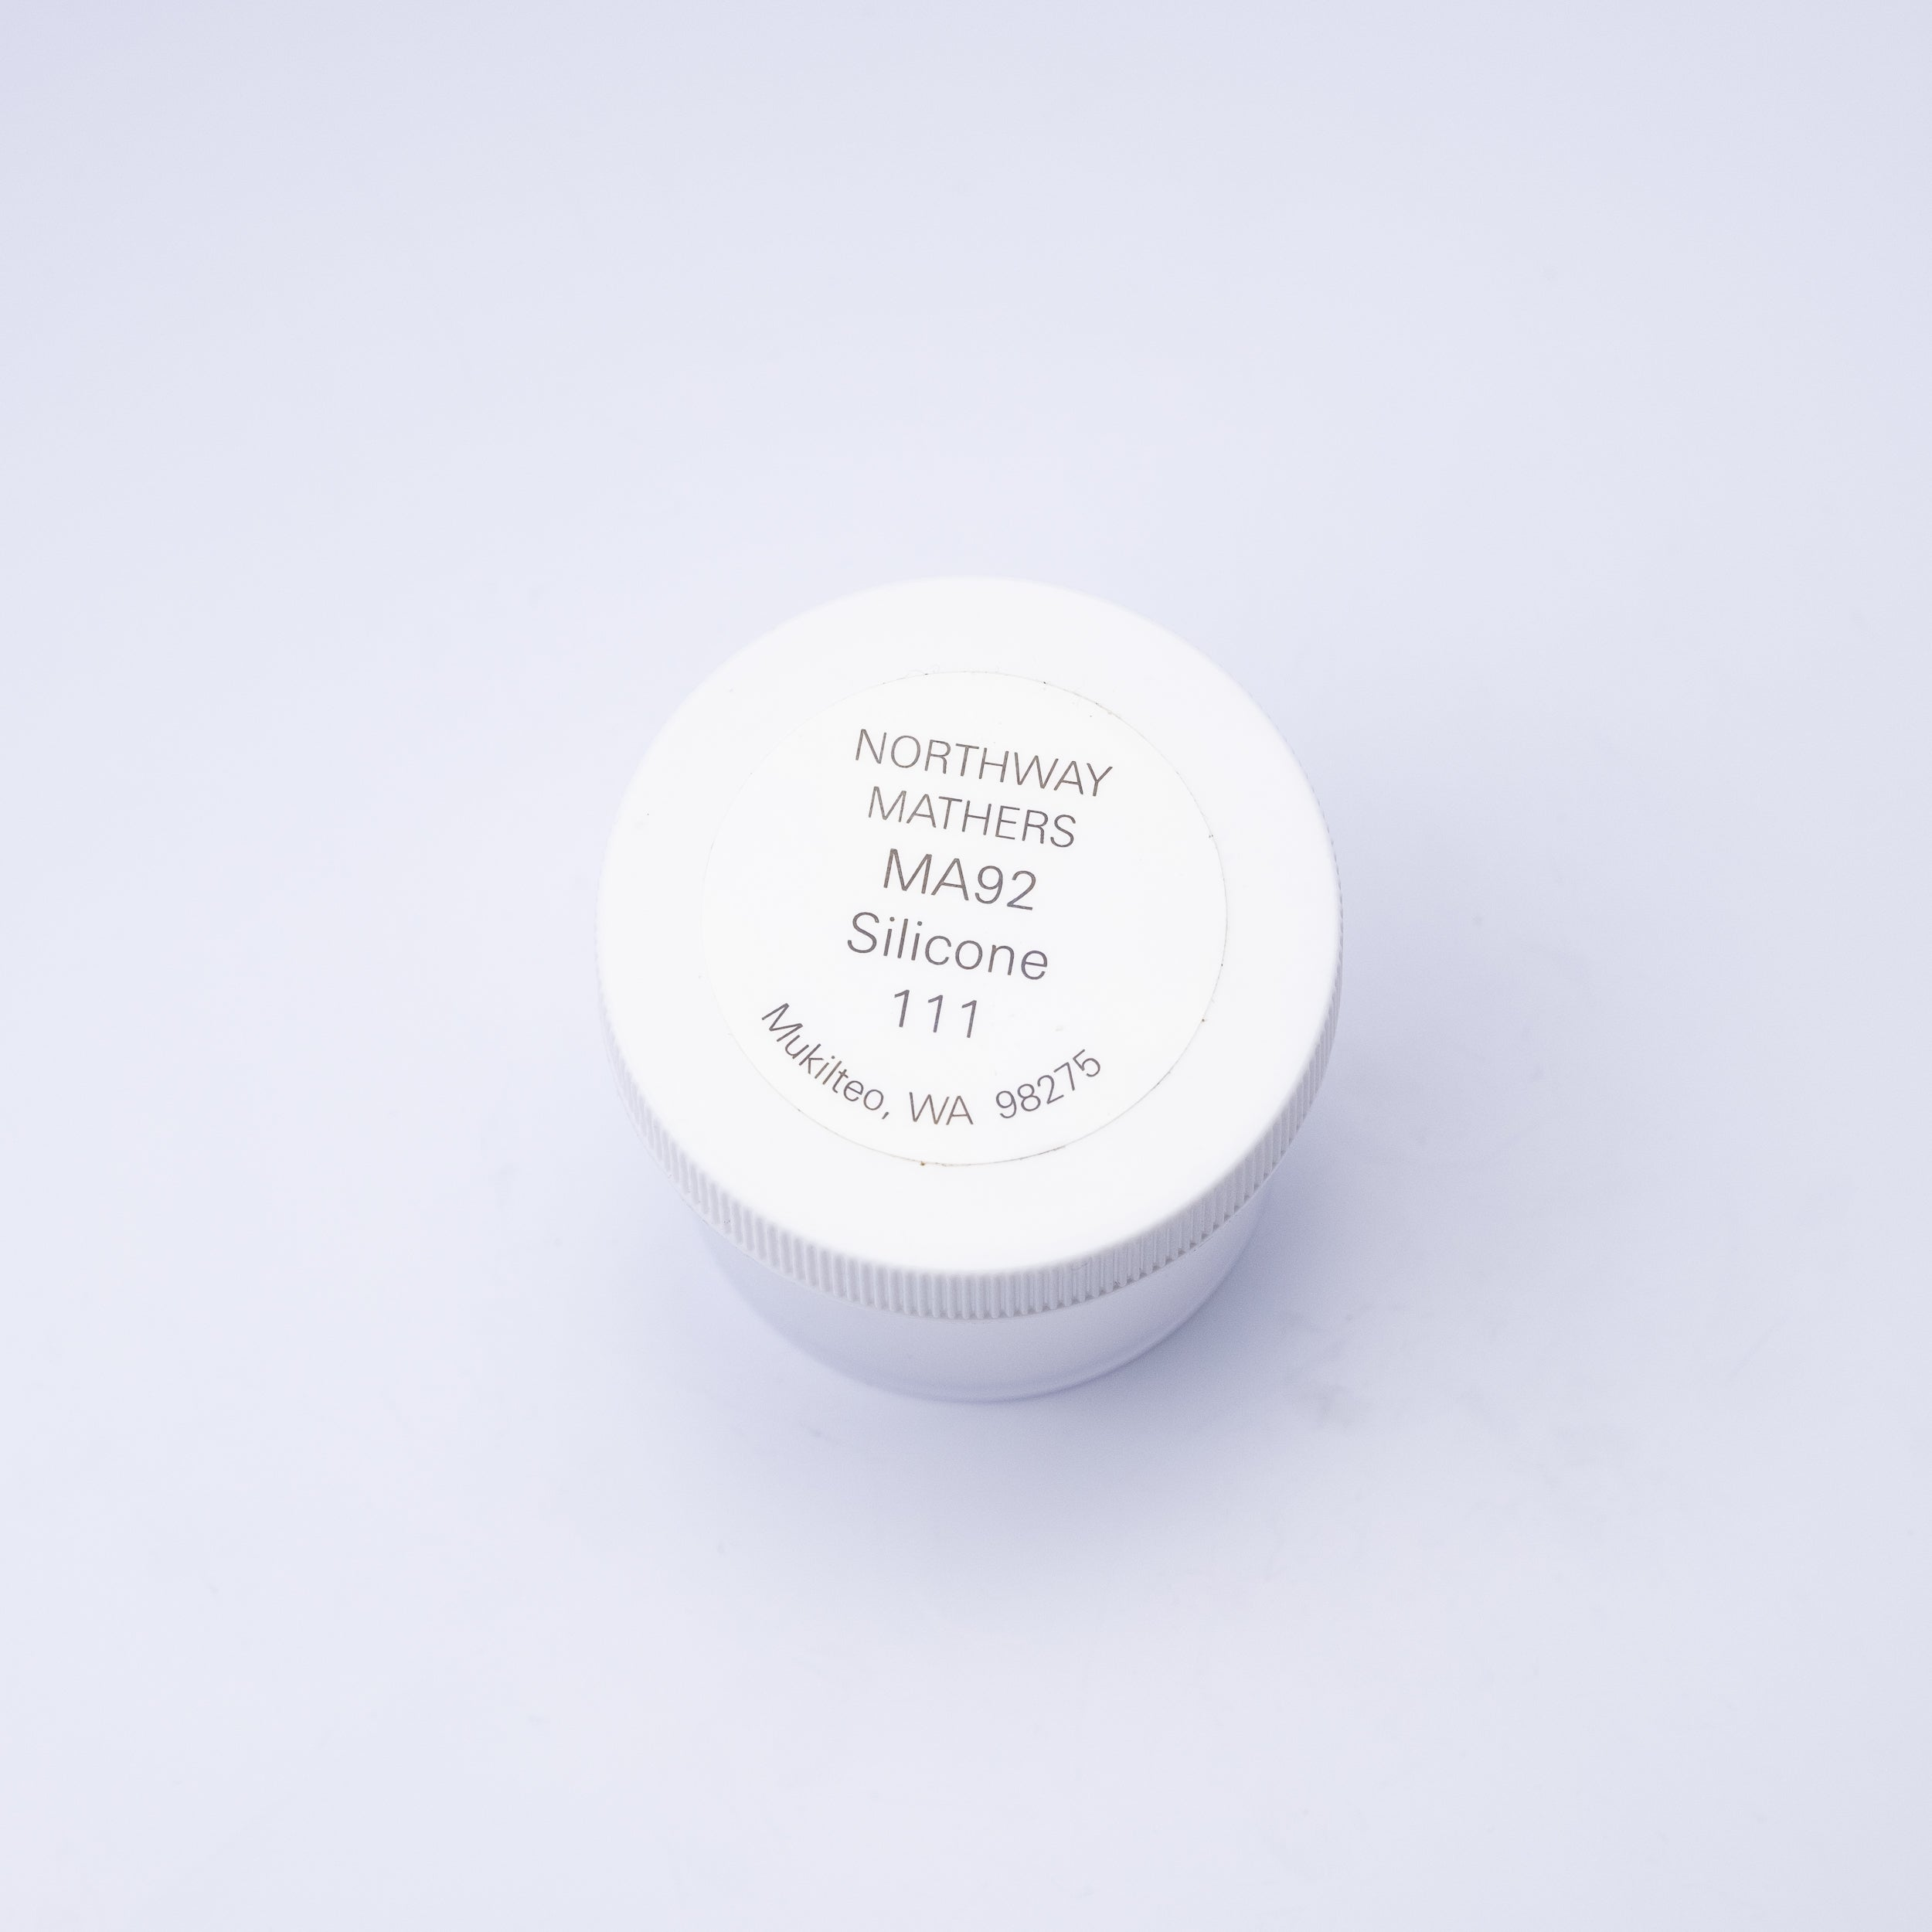 MA92-0100 LUBRICANT SILICONE 111 - Mathers Controls